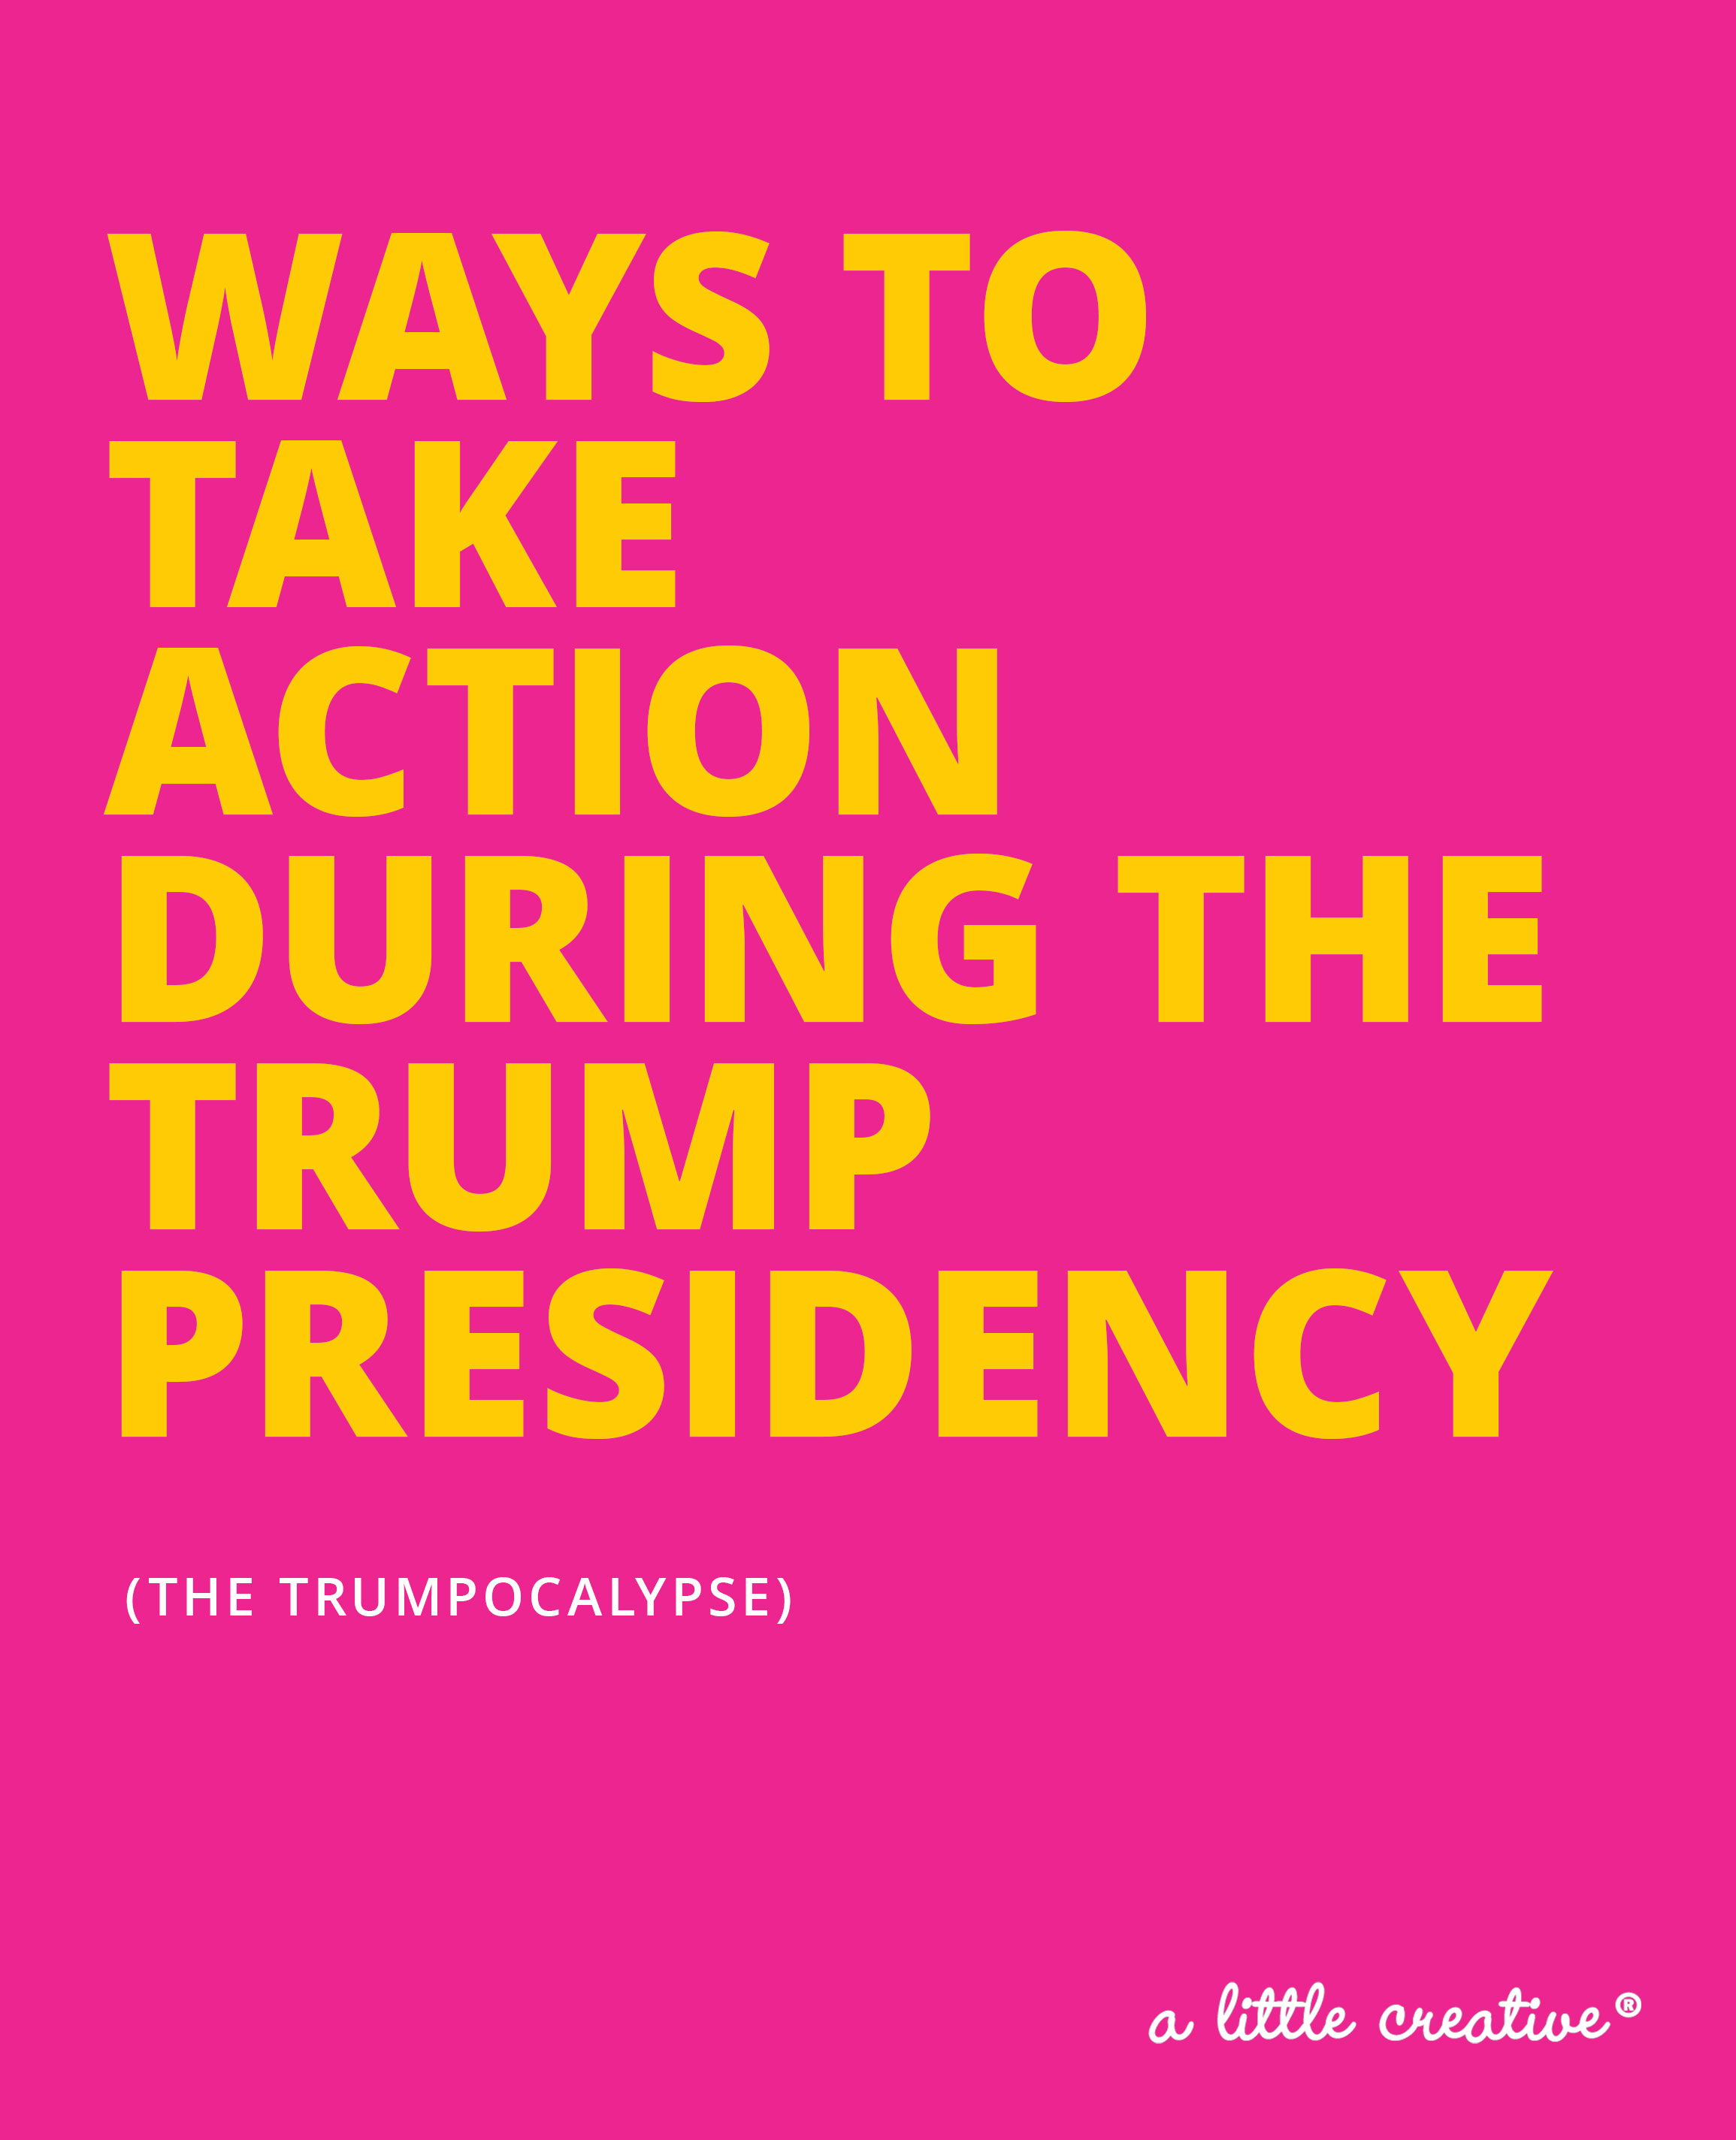 ways to take action during the Trumpocalypse // a little creative